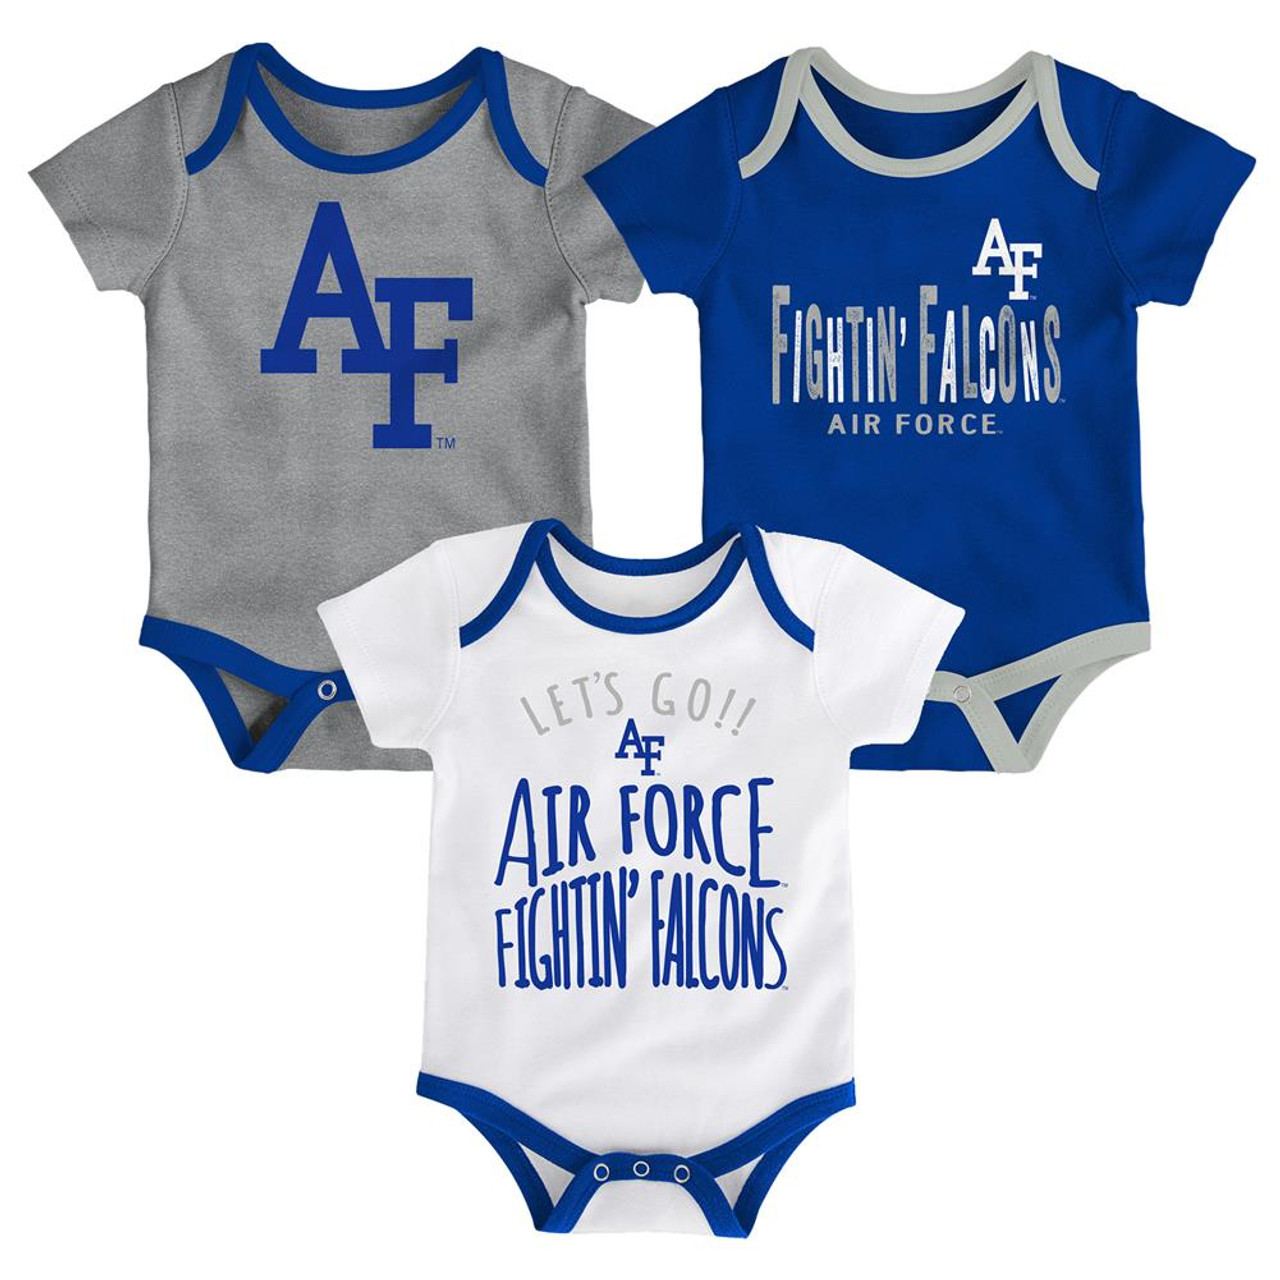 Air Force Academy Falcons Infant Creeper Set Lil Tailgater 3 Pack